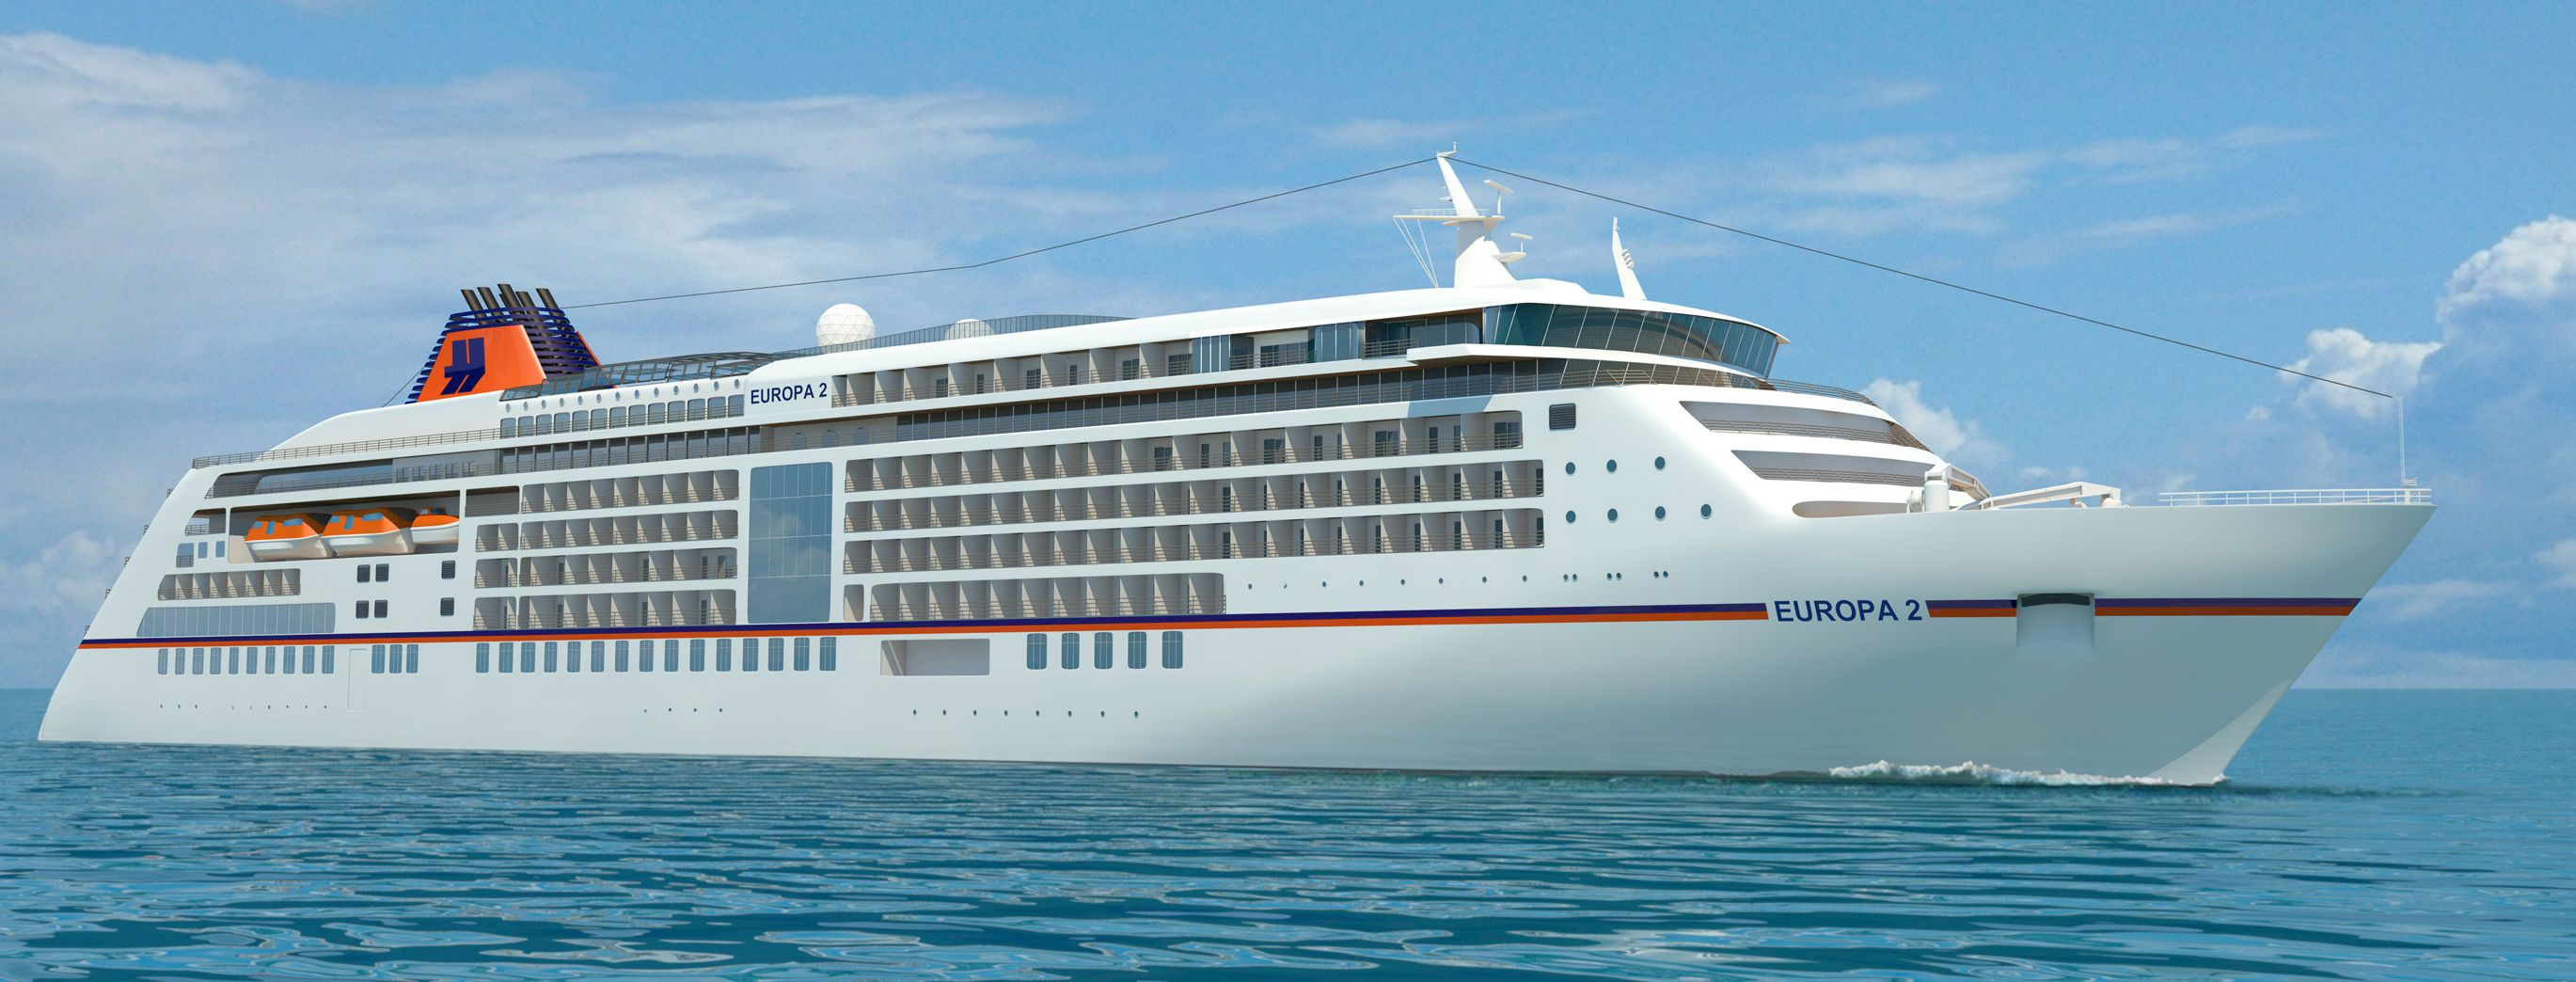 Cruise ship Europa 2 - Hapag-Lloyd Cruises